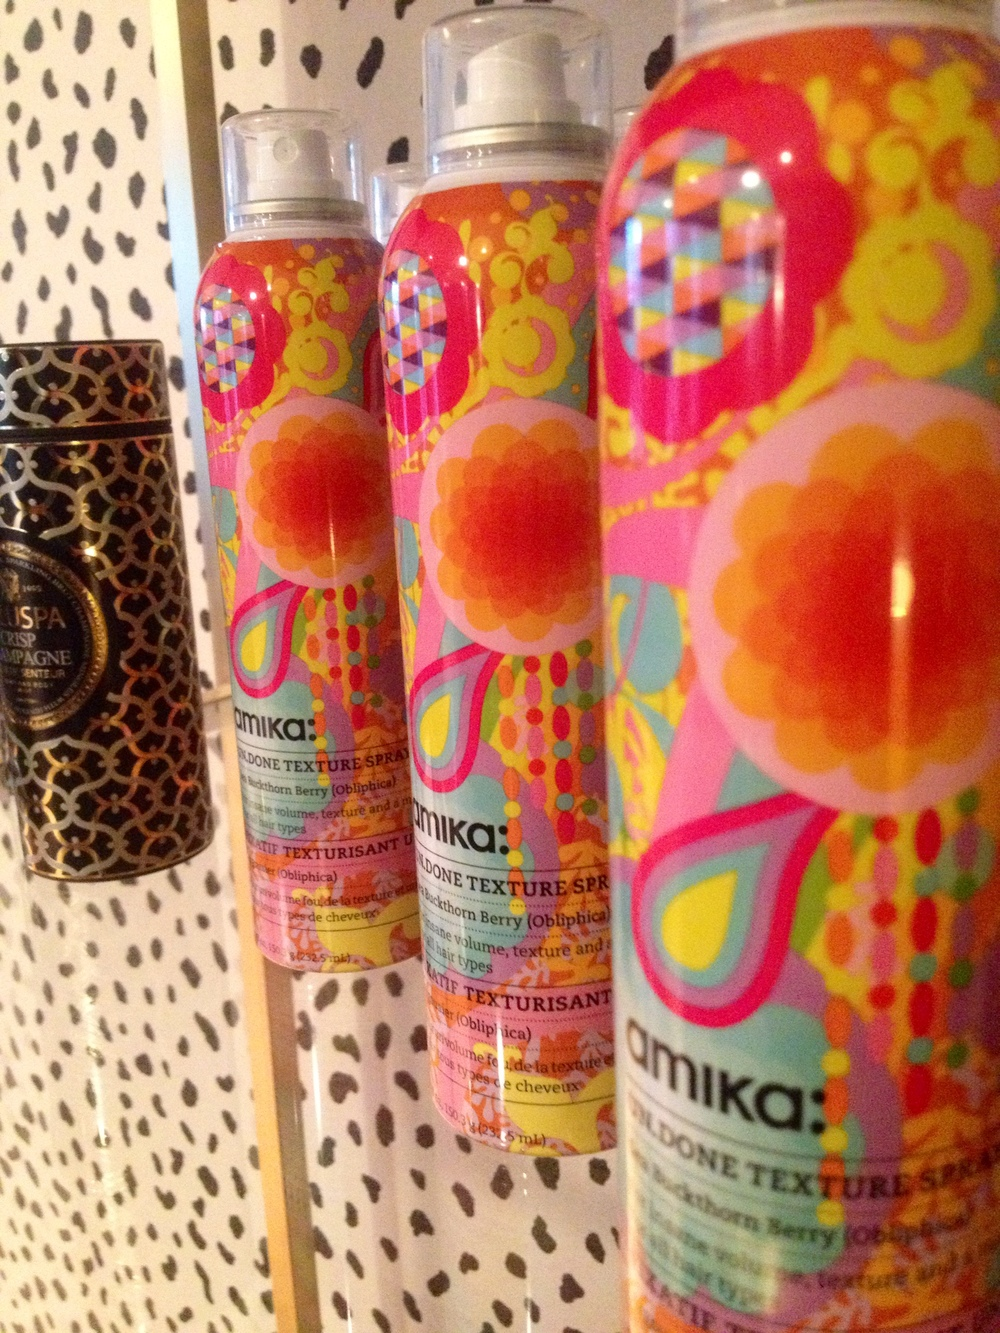 Amika styling line - means girlfriend in Latin… the perfect eco-friendly niche product for long-lasting, touchable styles.